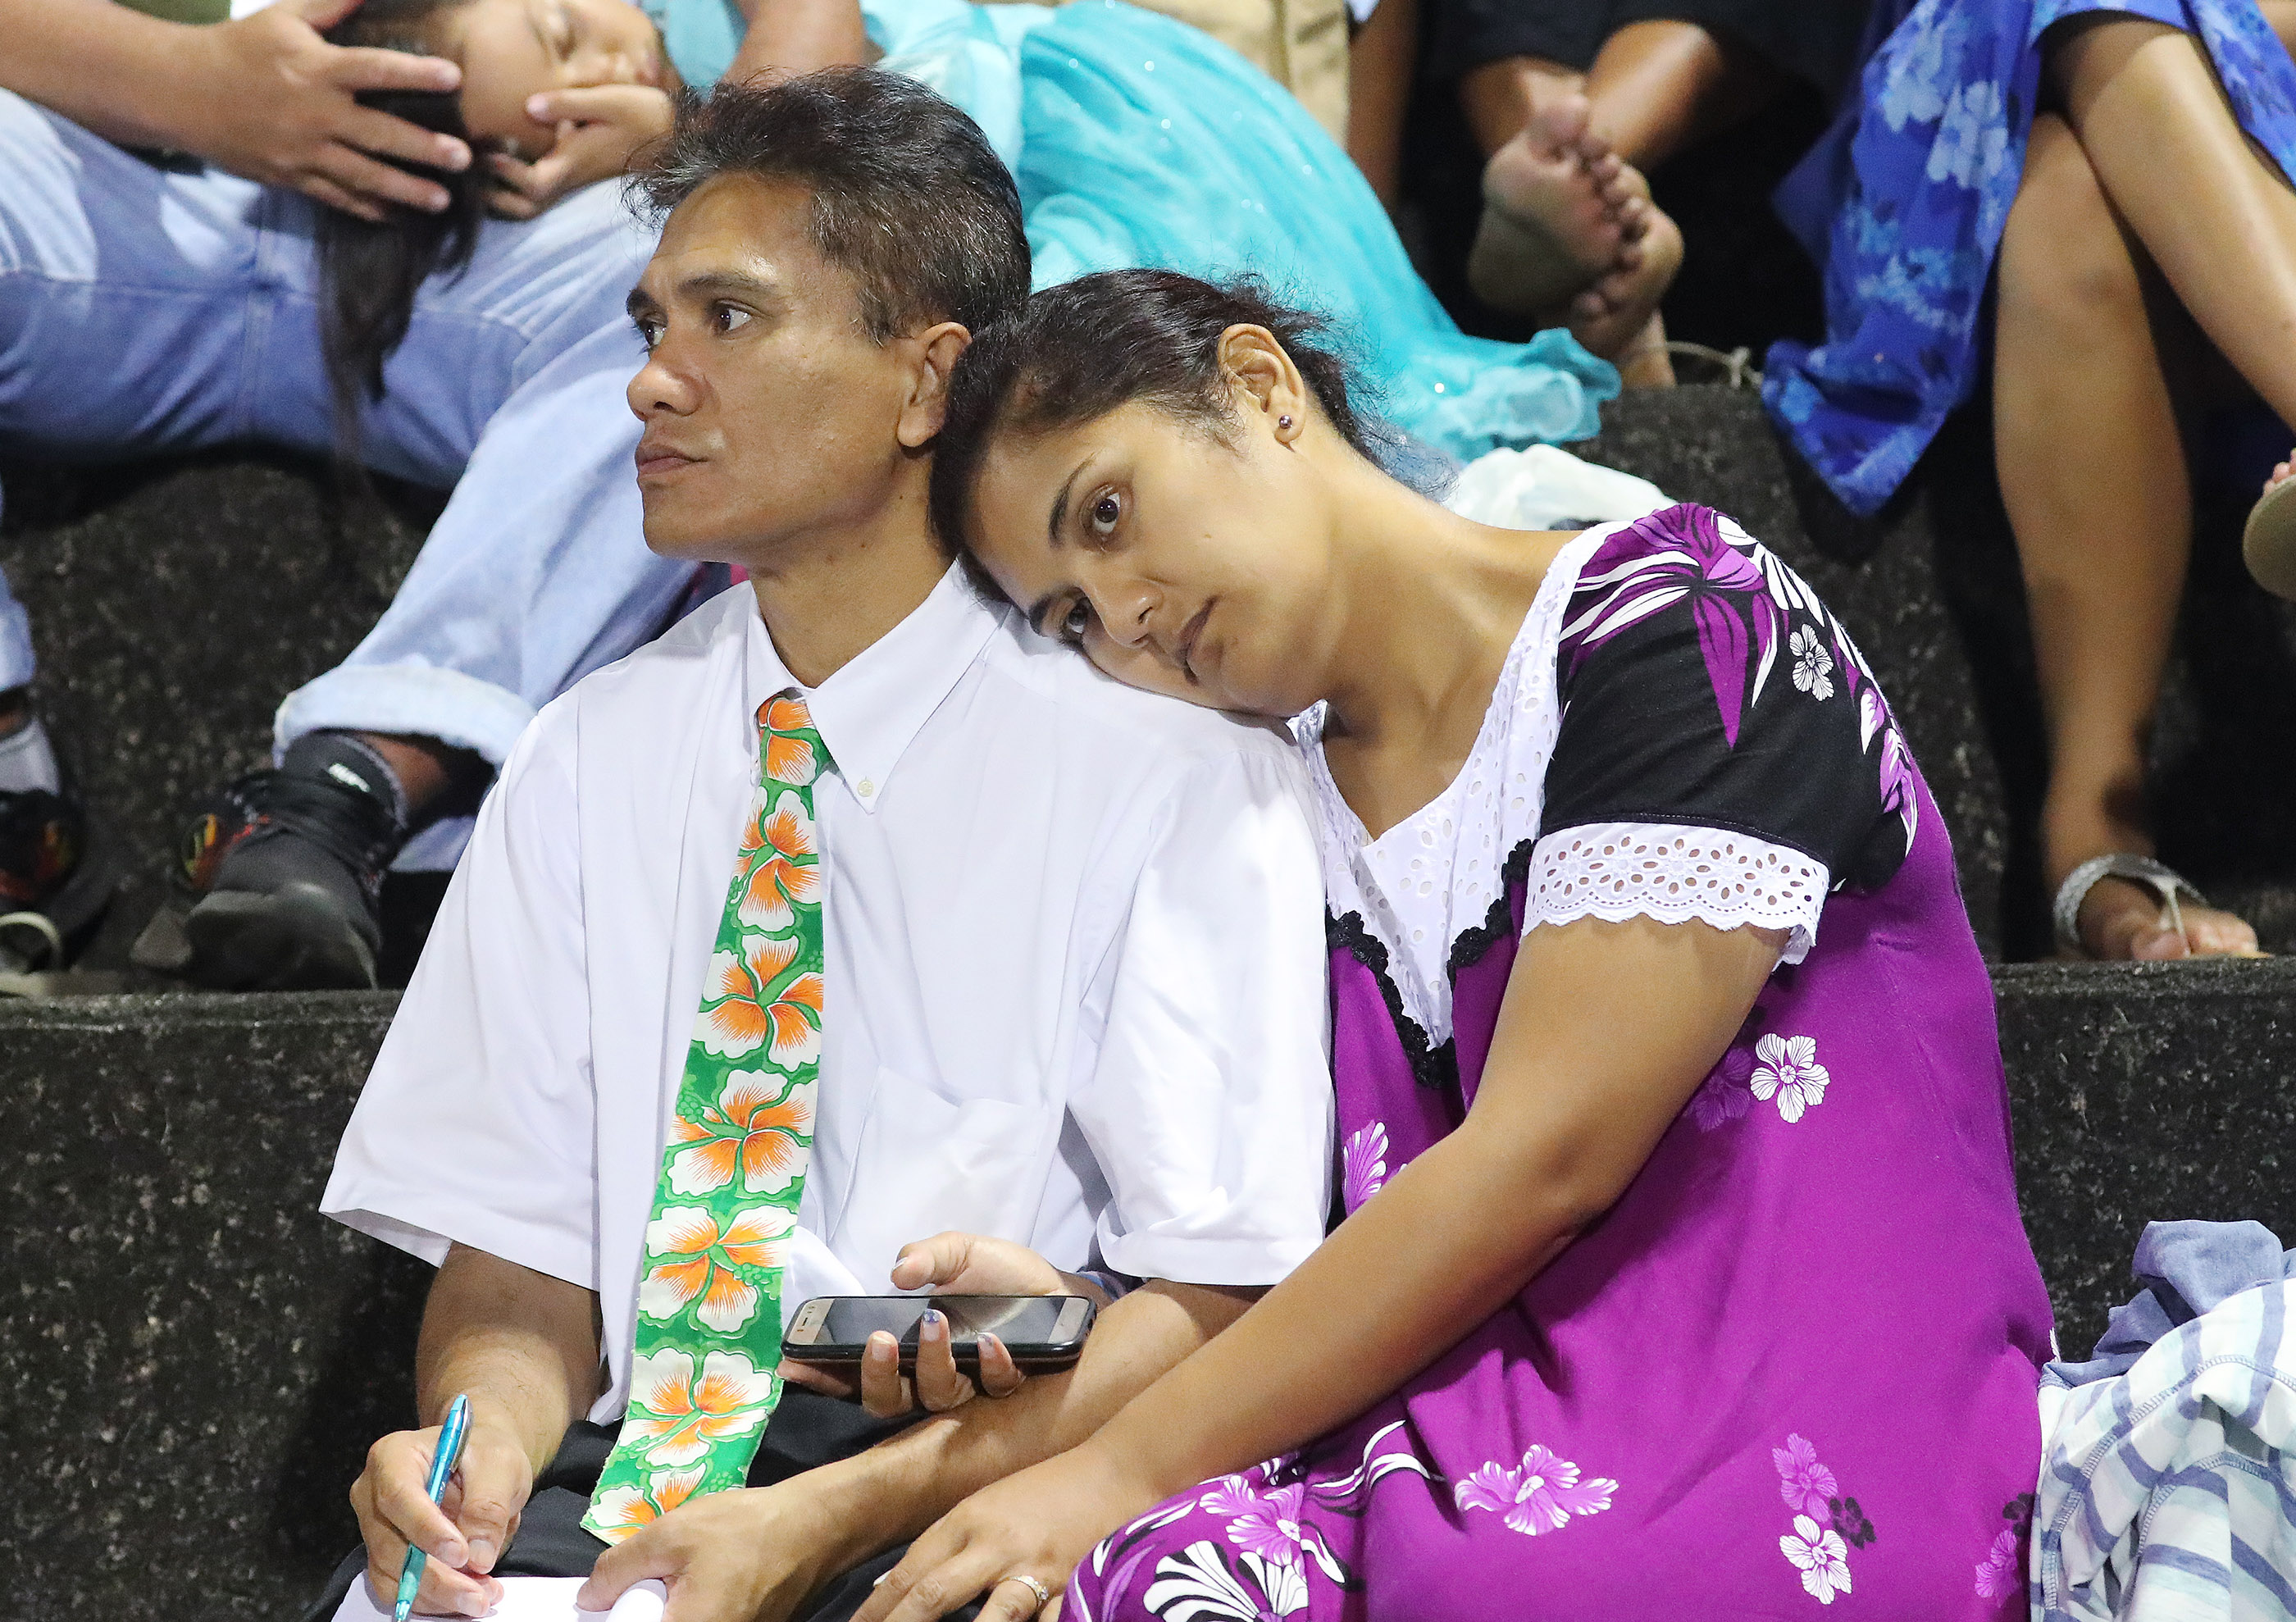 Paul and Tesada Oaoa listen during a devotional in Papeete, Tahiti, on May 24, 2019.